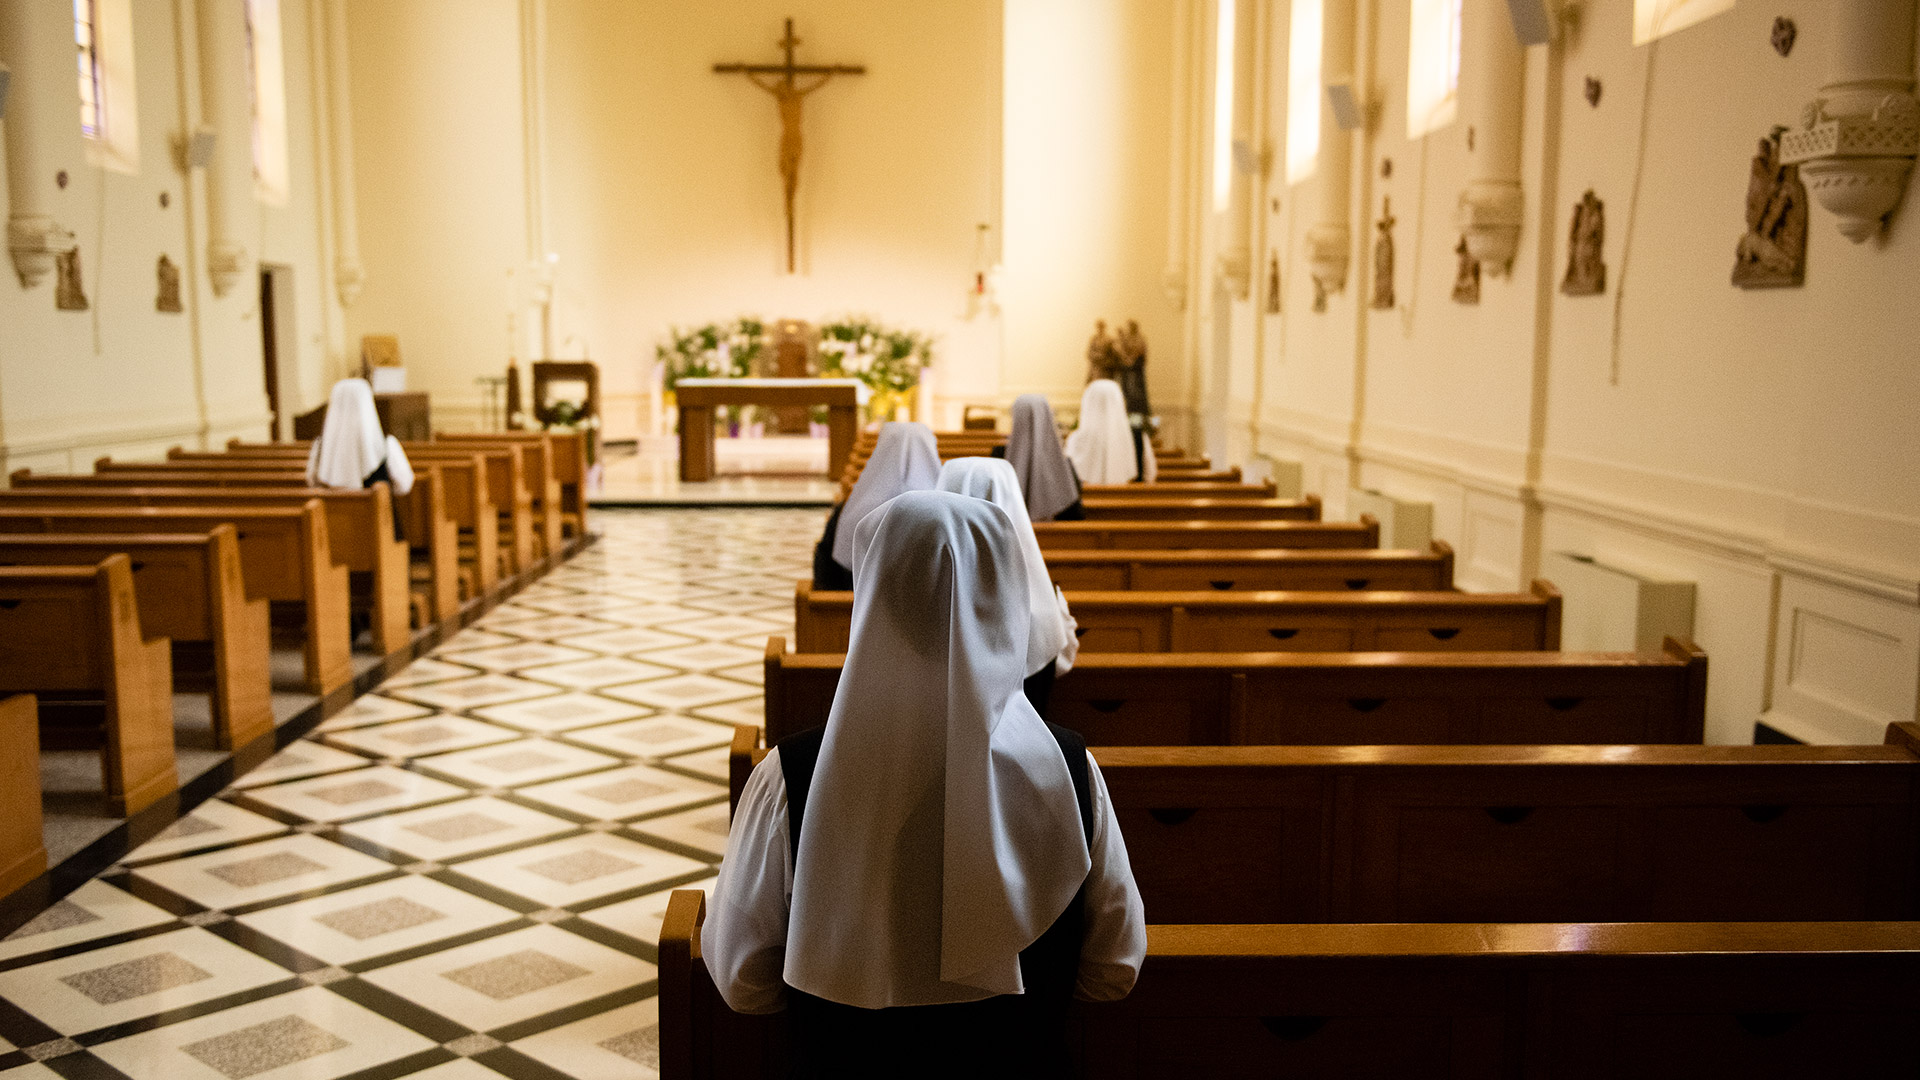 LITTLE SISTERS OF THE POOR, CORONAVIRUS,COVID19